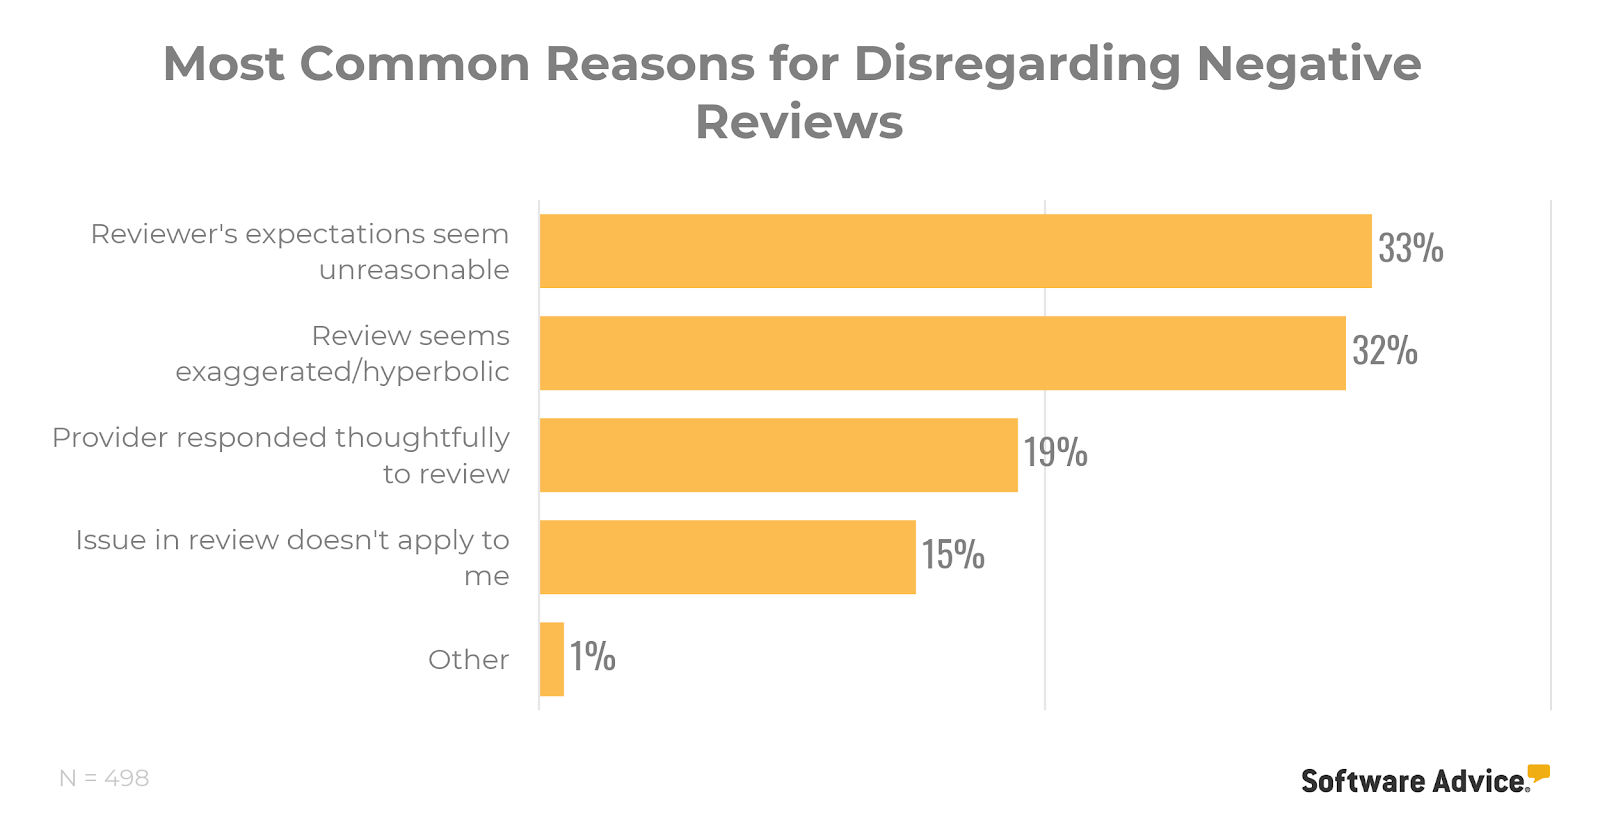 Most common reasons for patients disregarding negative reviews